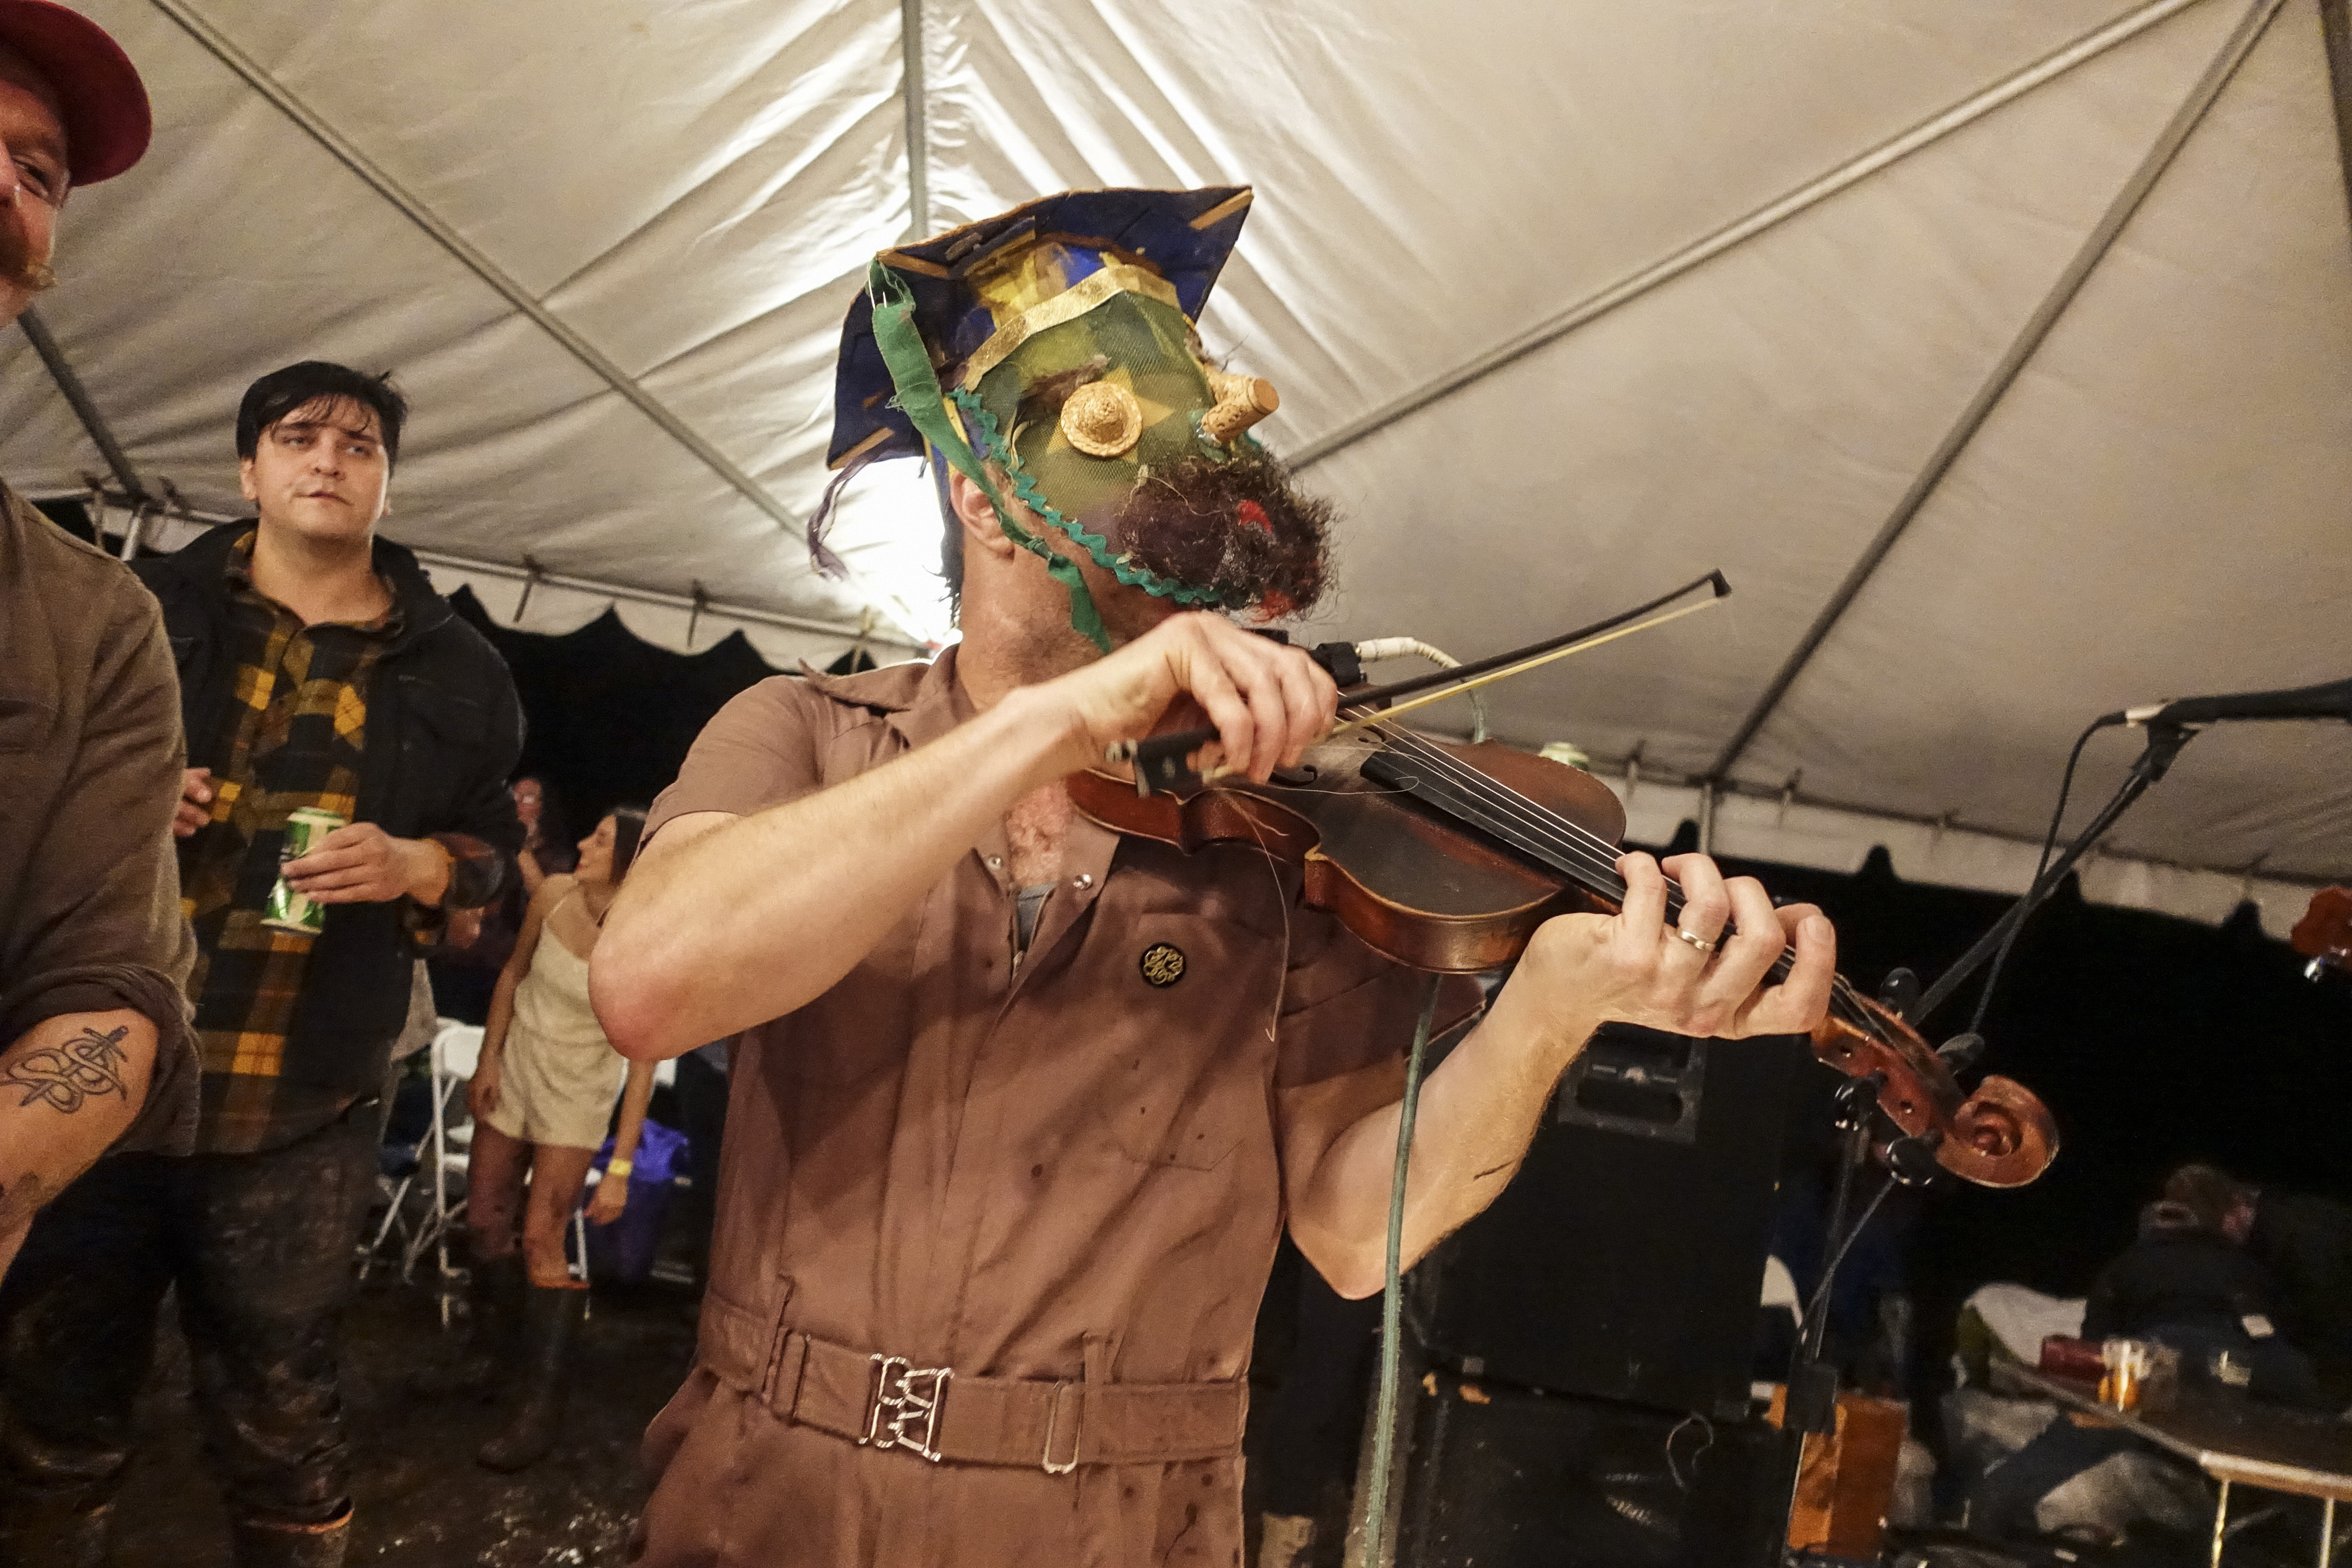 A man plays the fiddle during filming in Louisiana.